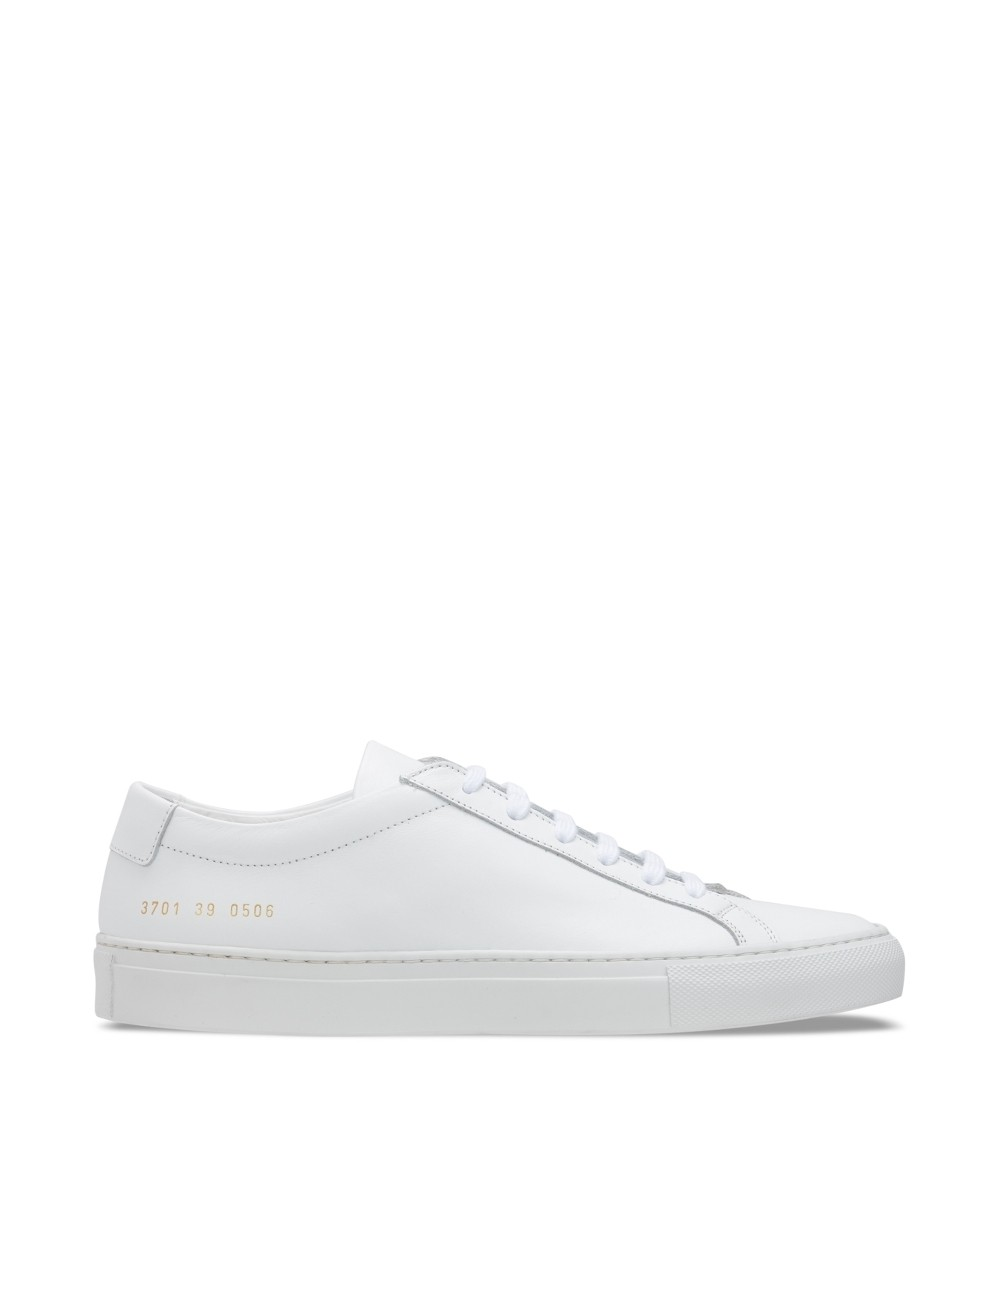 94cffb5d3d11a Common Projects - Original Achilles Low Sneakers - Club 21